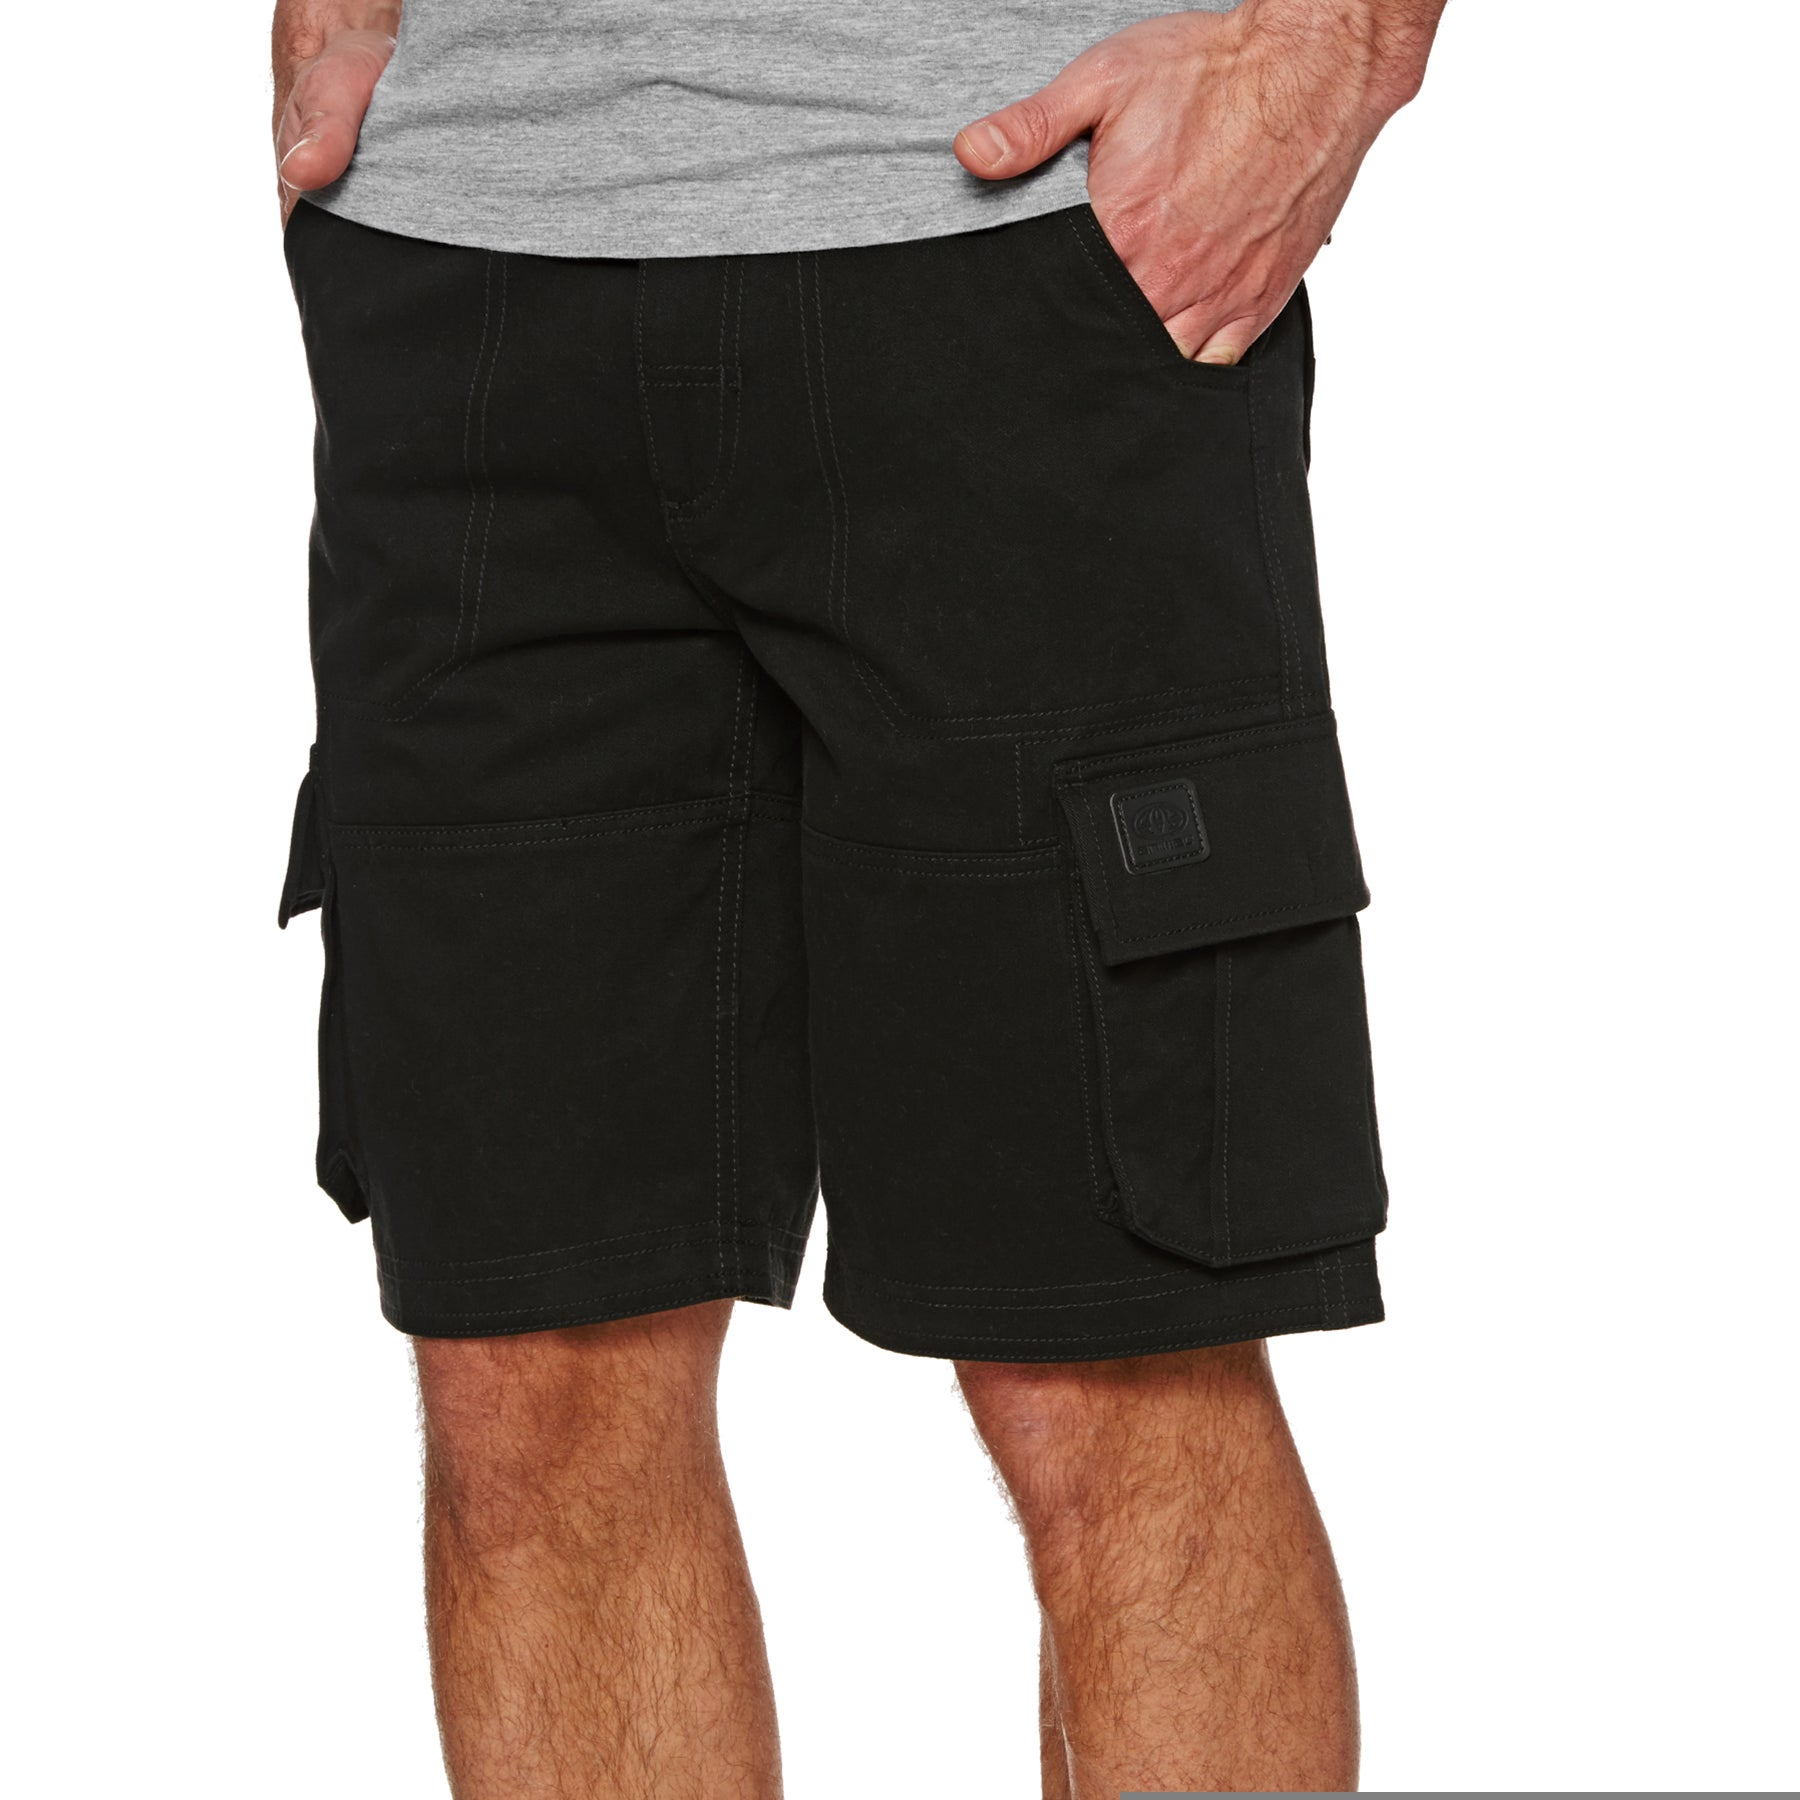 Animal Agouras Walk Shorts - Black